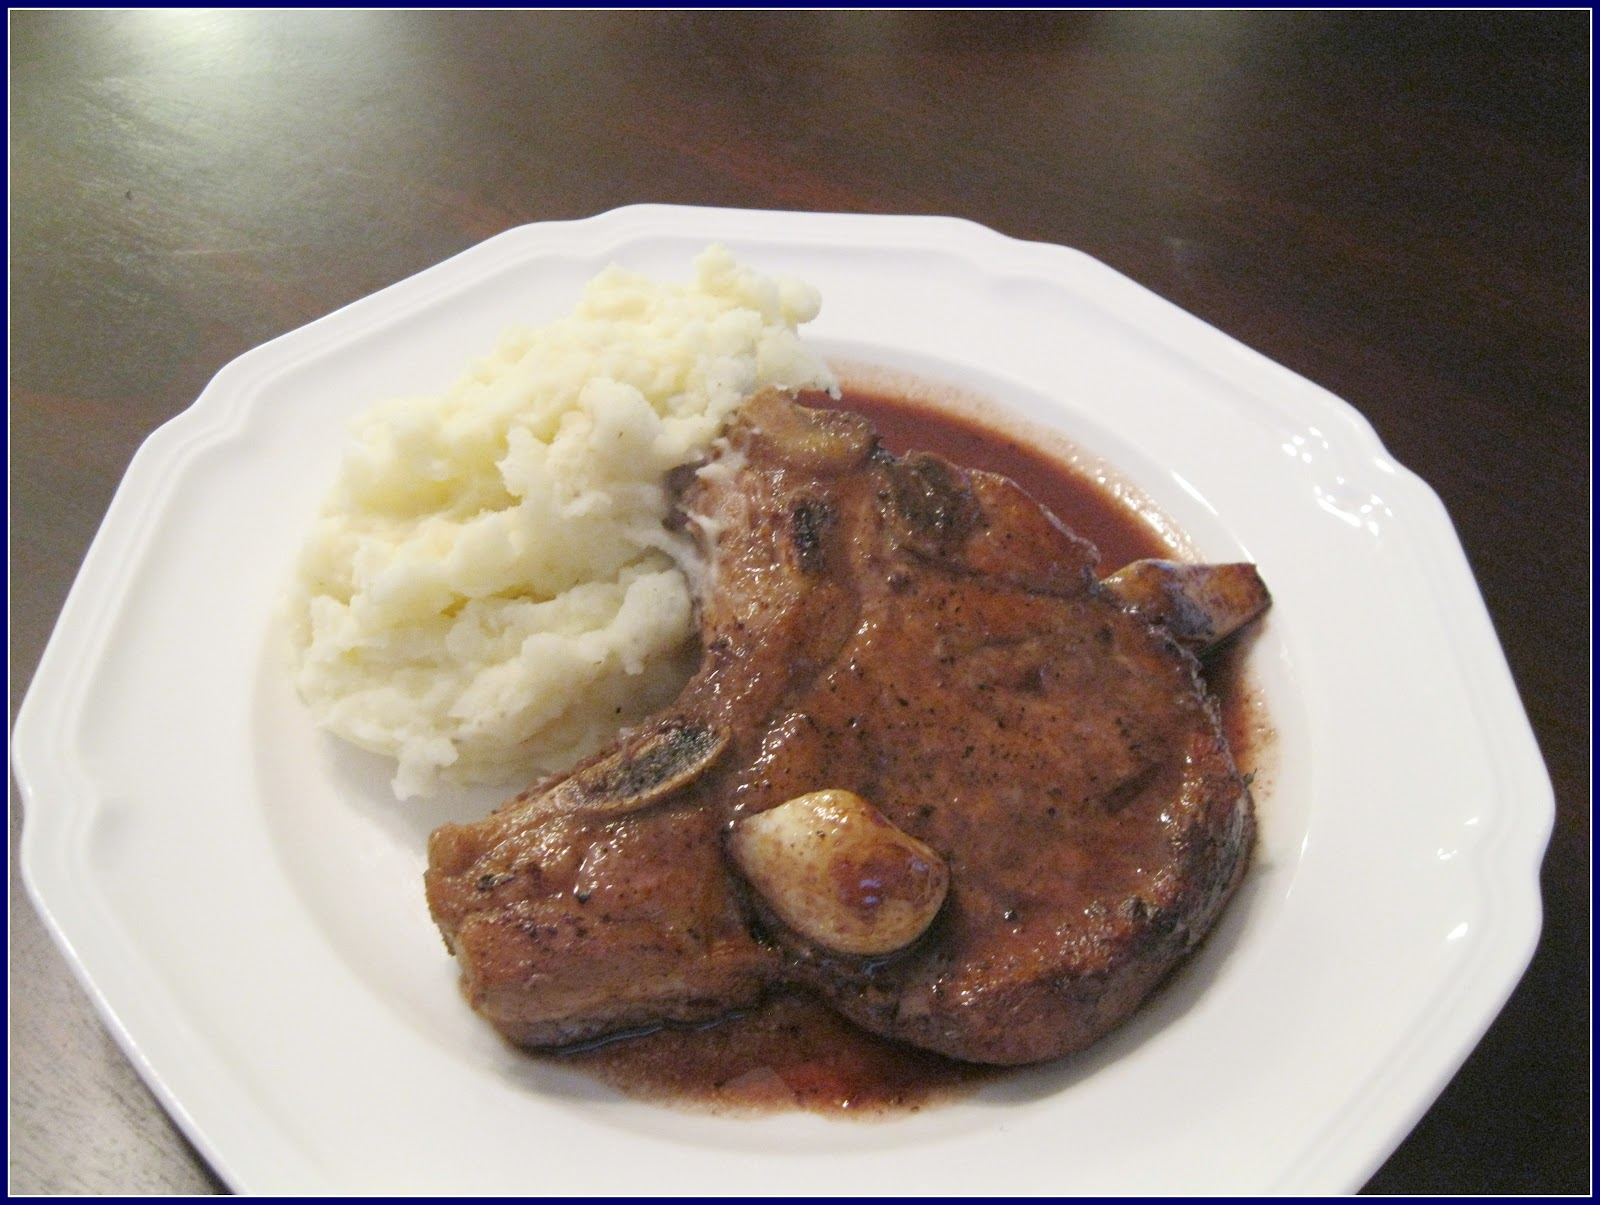 Dinner Tonight: Pork Chops with Red Wine and Garlic